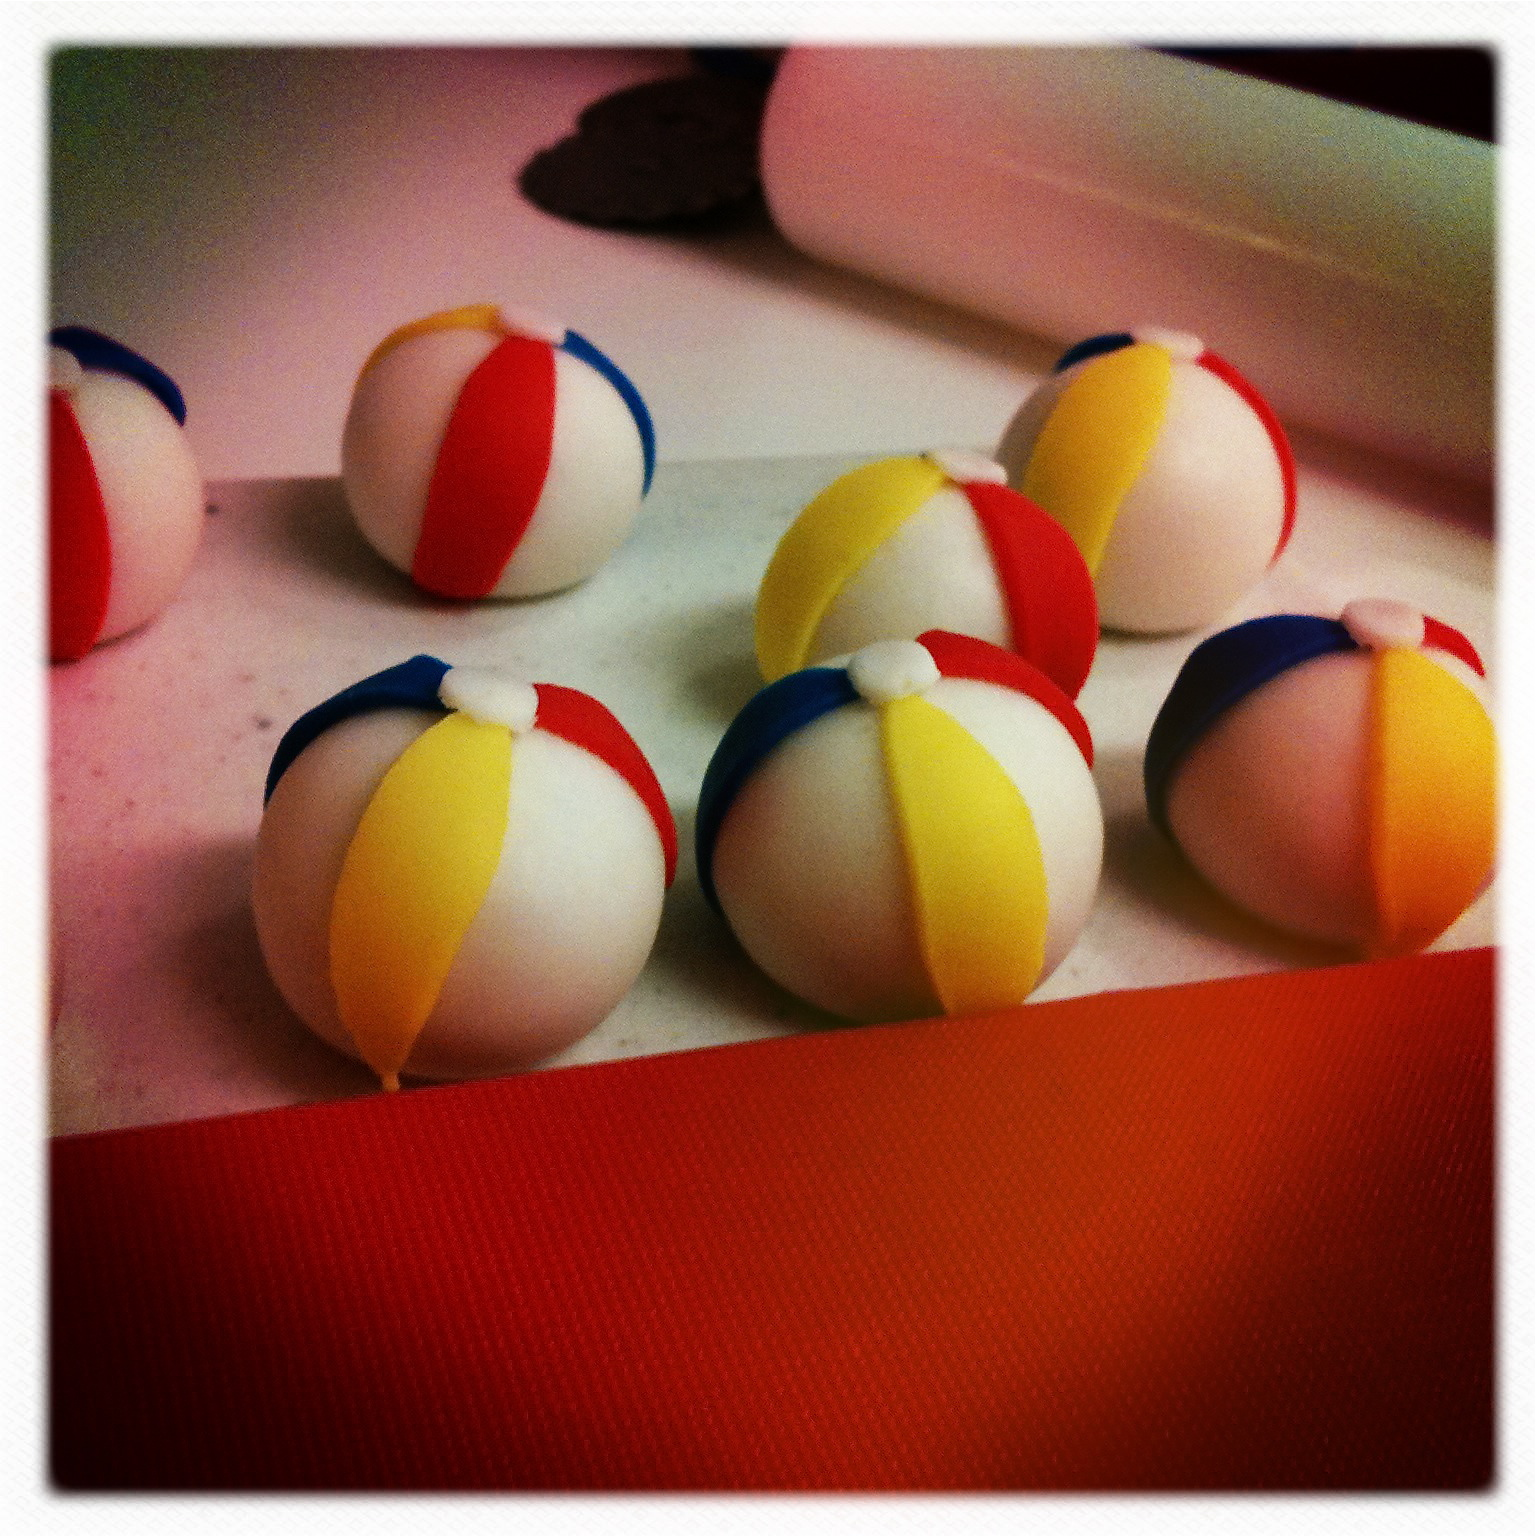 Discussion on this topic: How to Make Beach Ball Cake Pops, how-to-make-beach-ball-cake-pops/